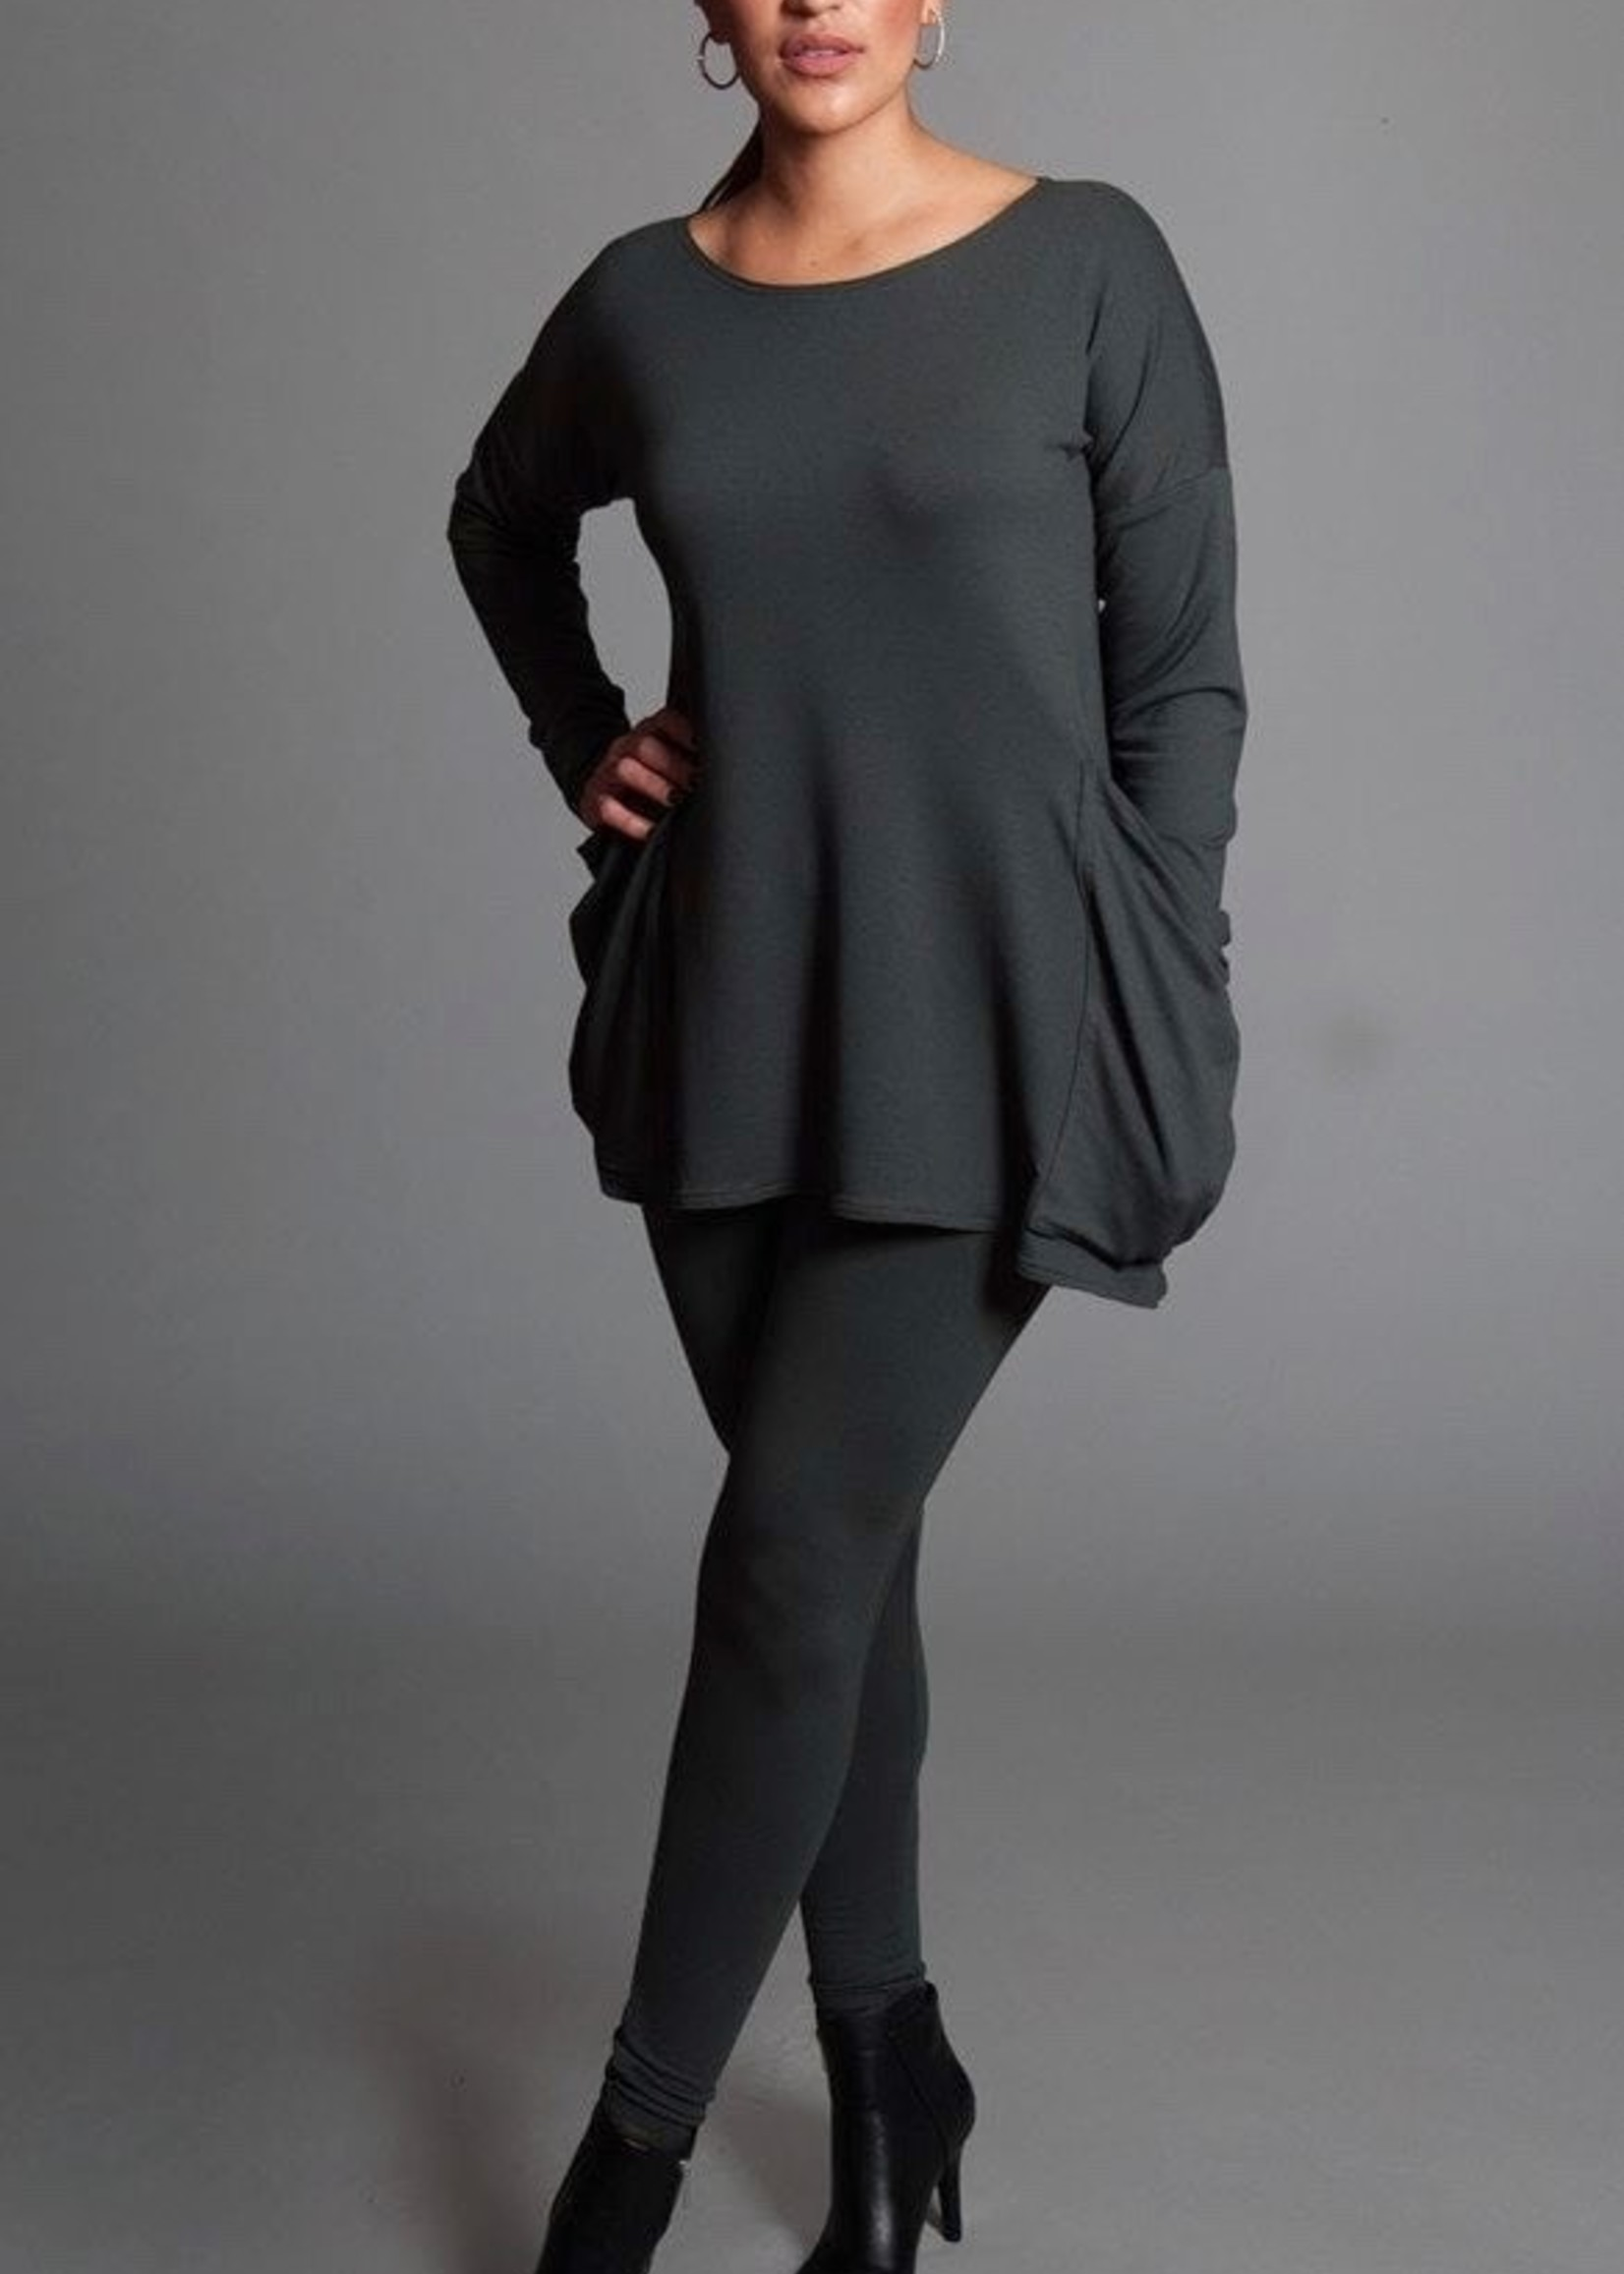 SARAH KUENYEFU POCKET TUNIC BAMBOO KNIT